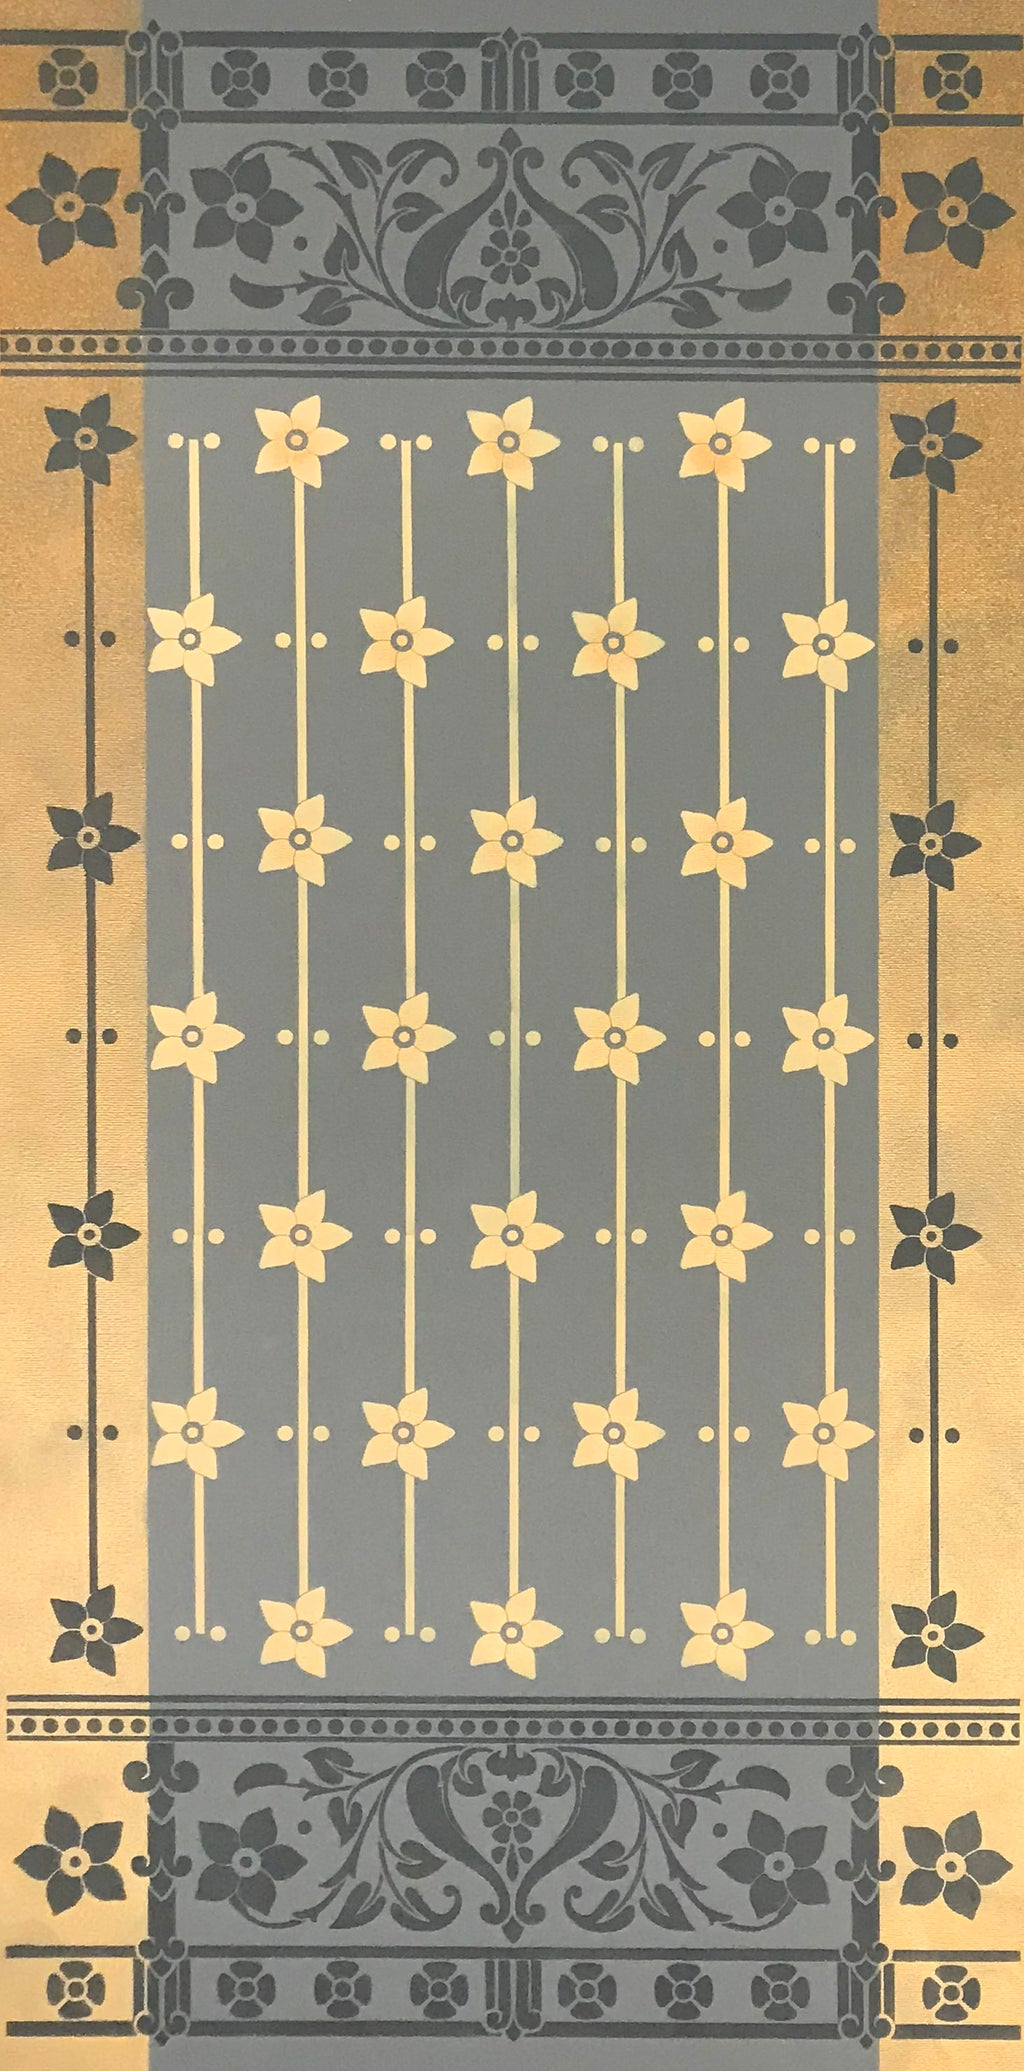 The full image of this floorcloth based on an 1875 Christopher Dresser pattern that looks both modern and influenced by Japanese design (which much of Dresser's work was) in this floorcloth version.